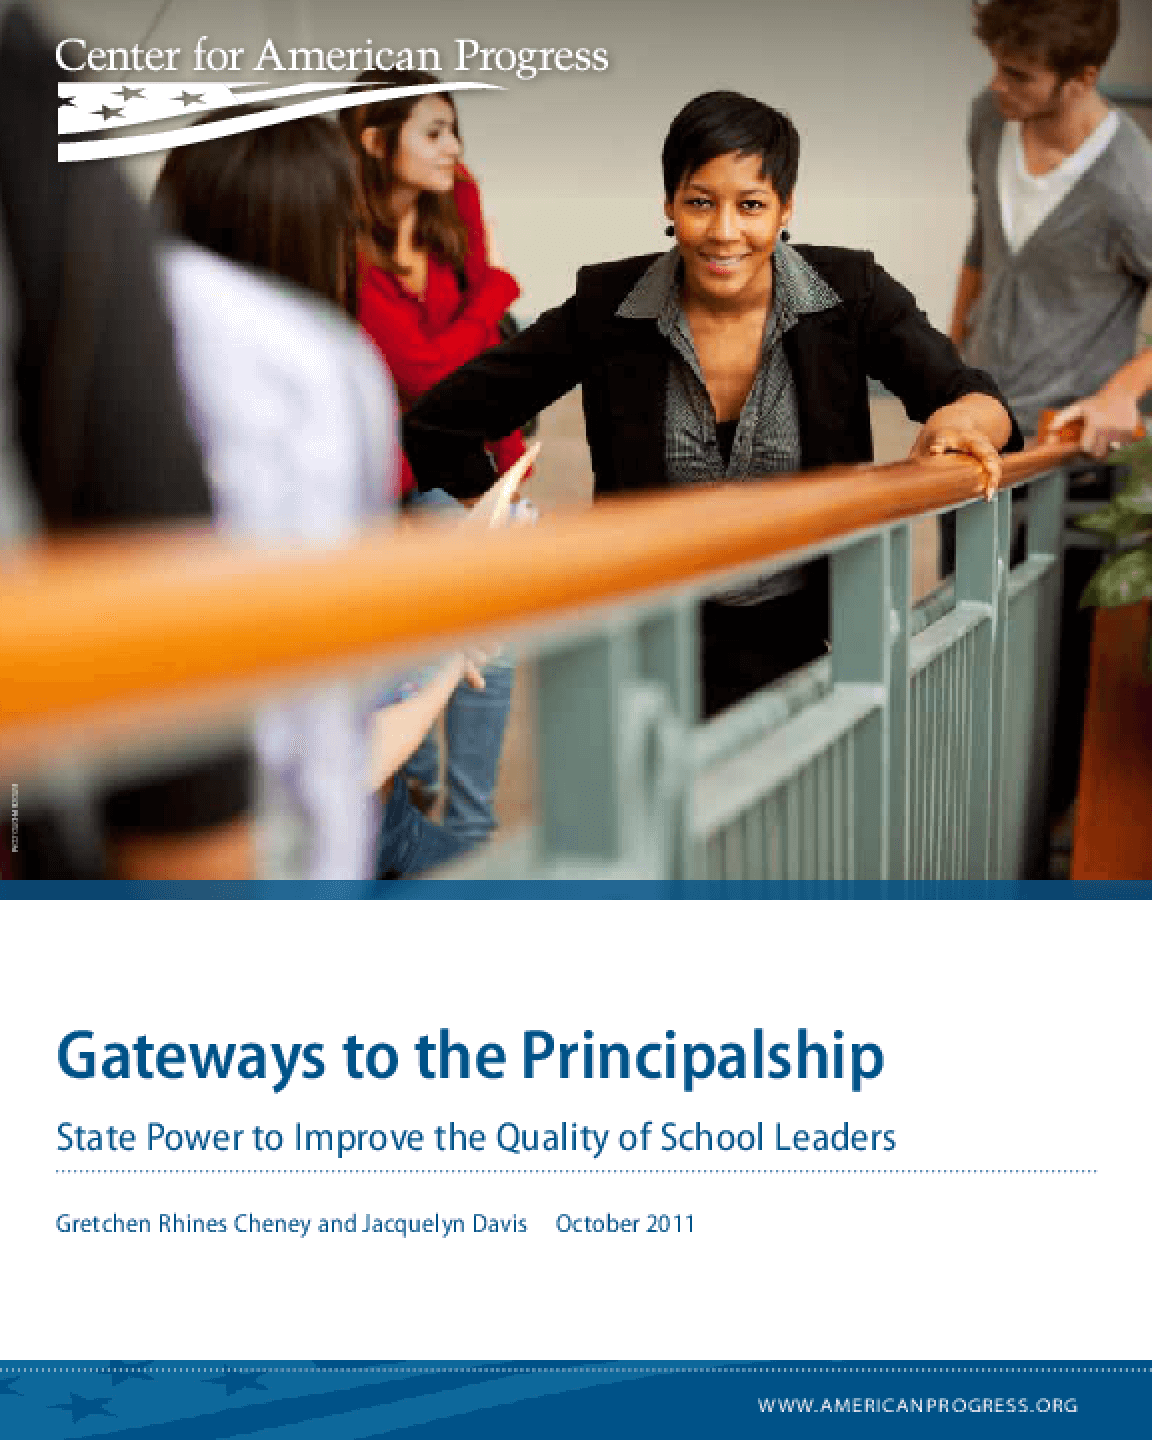 Gateways to the Principalship: State Power to Improve the Quality of School Leaders